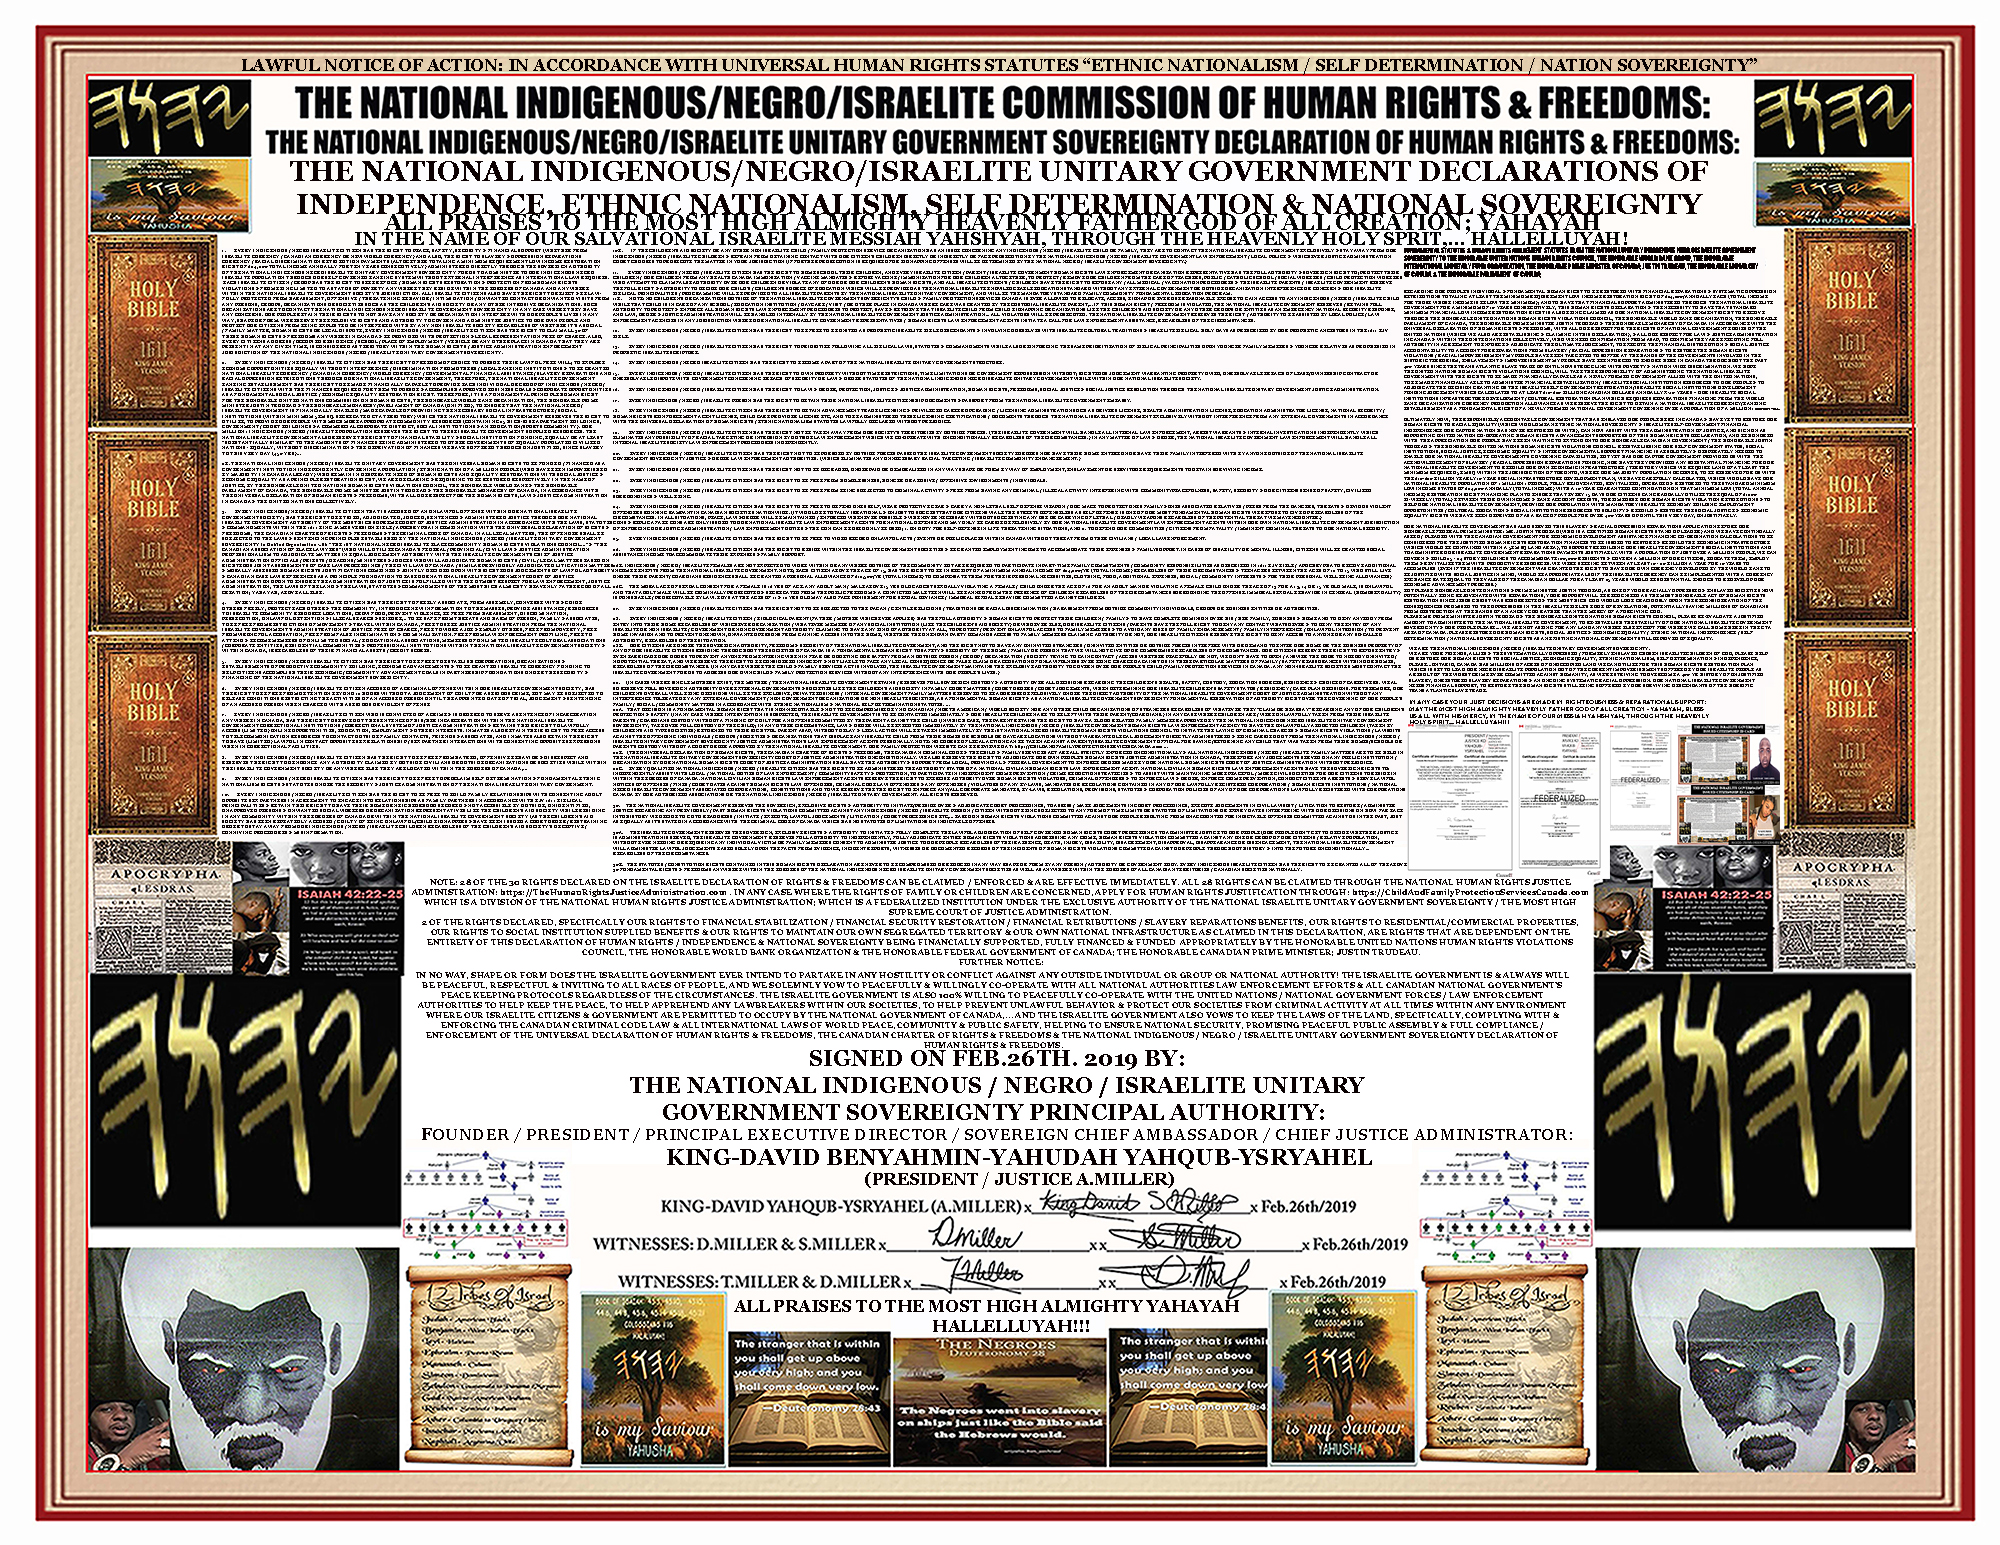 OFFICIAL9 DECLARATION OF NATIONAL ISRAELITE RIGHTS & FREEDOMS10